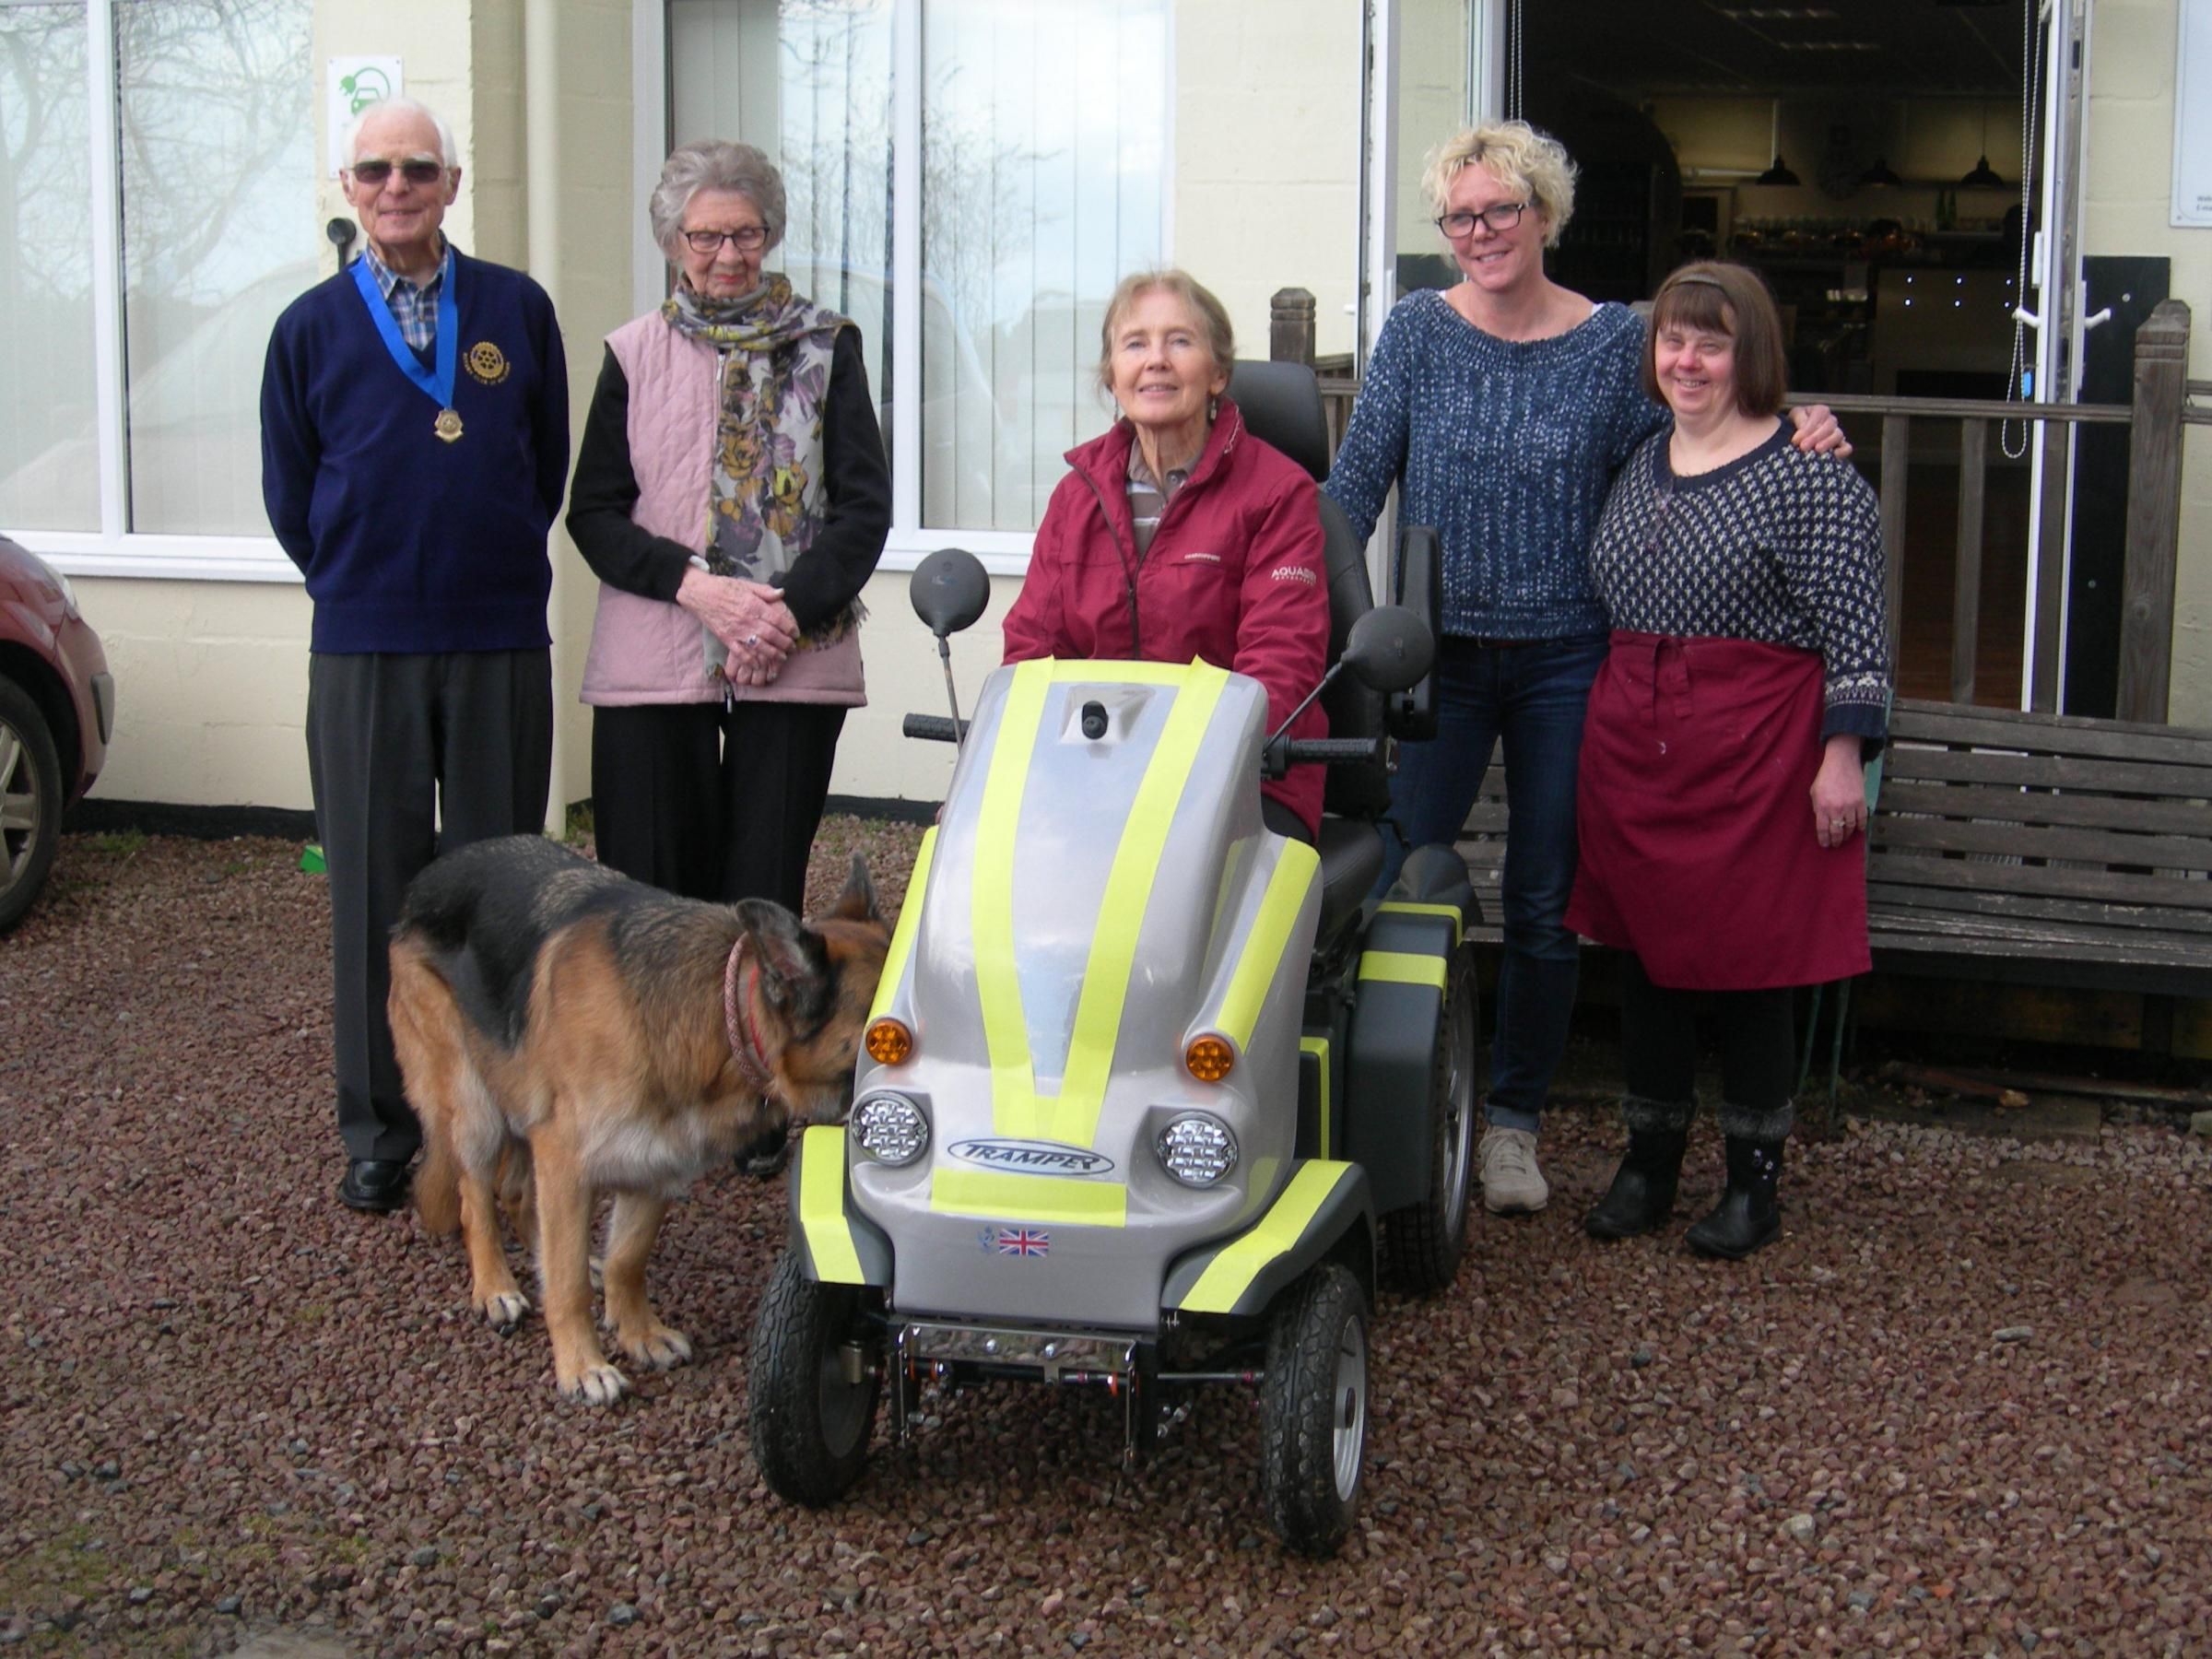 From left: Sandy Gibson,Shirley Abbott, Kate Harding and Alison Webb of Cafe H20 and Mrs Francis, plus Corky the Alsatian.